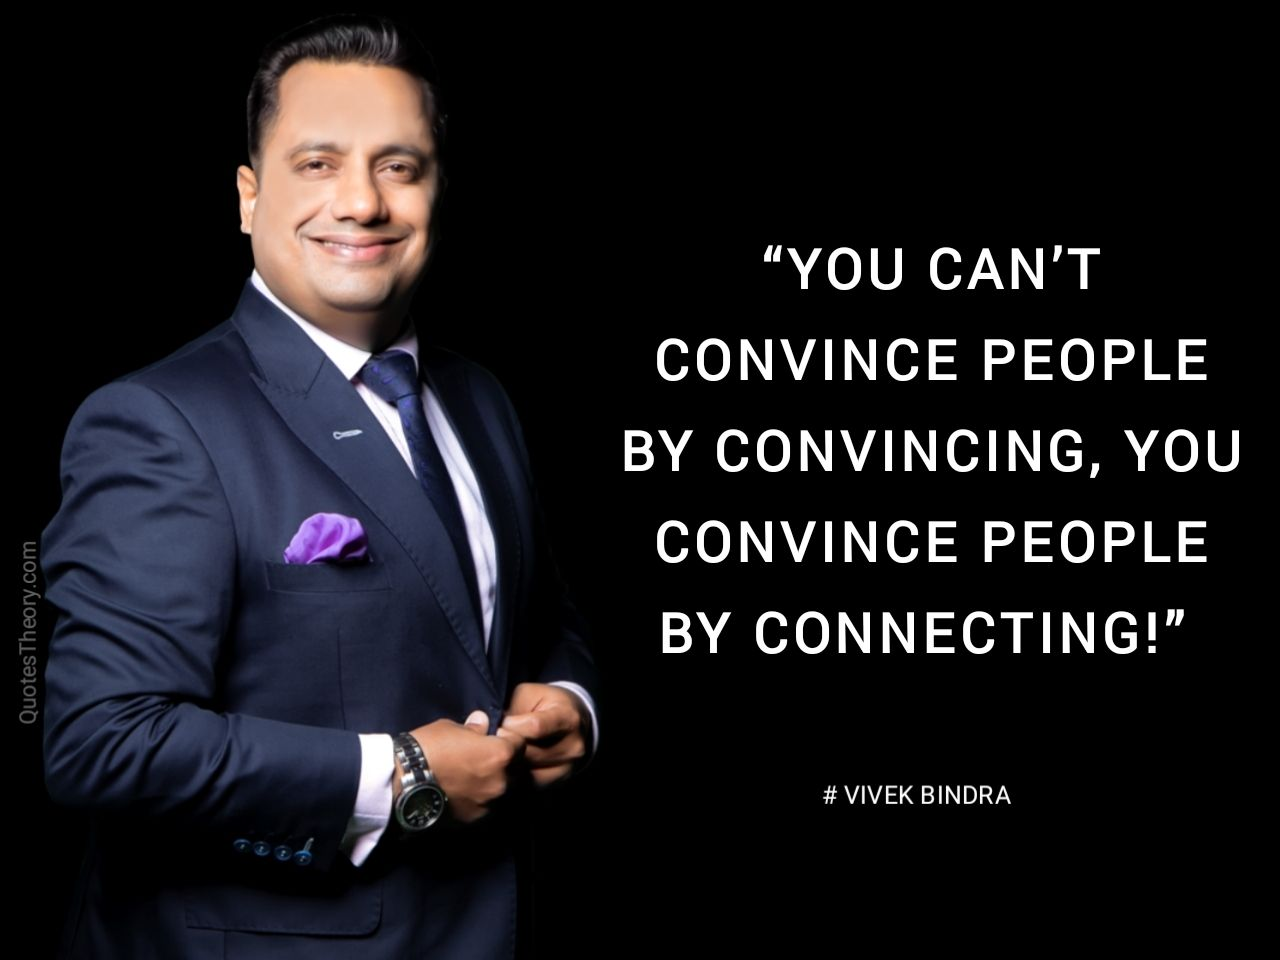 40 Best Motivational Quotes By Vivek Bindra In 2020 Best Motivational Quotes Best Motivational Speakers Motivational Quotes